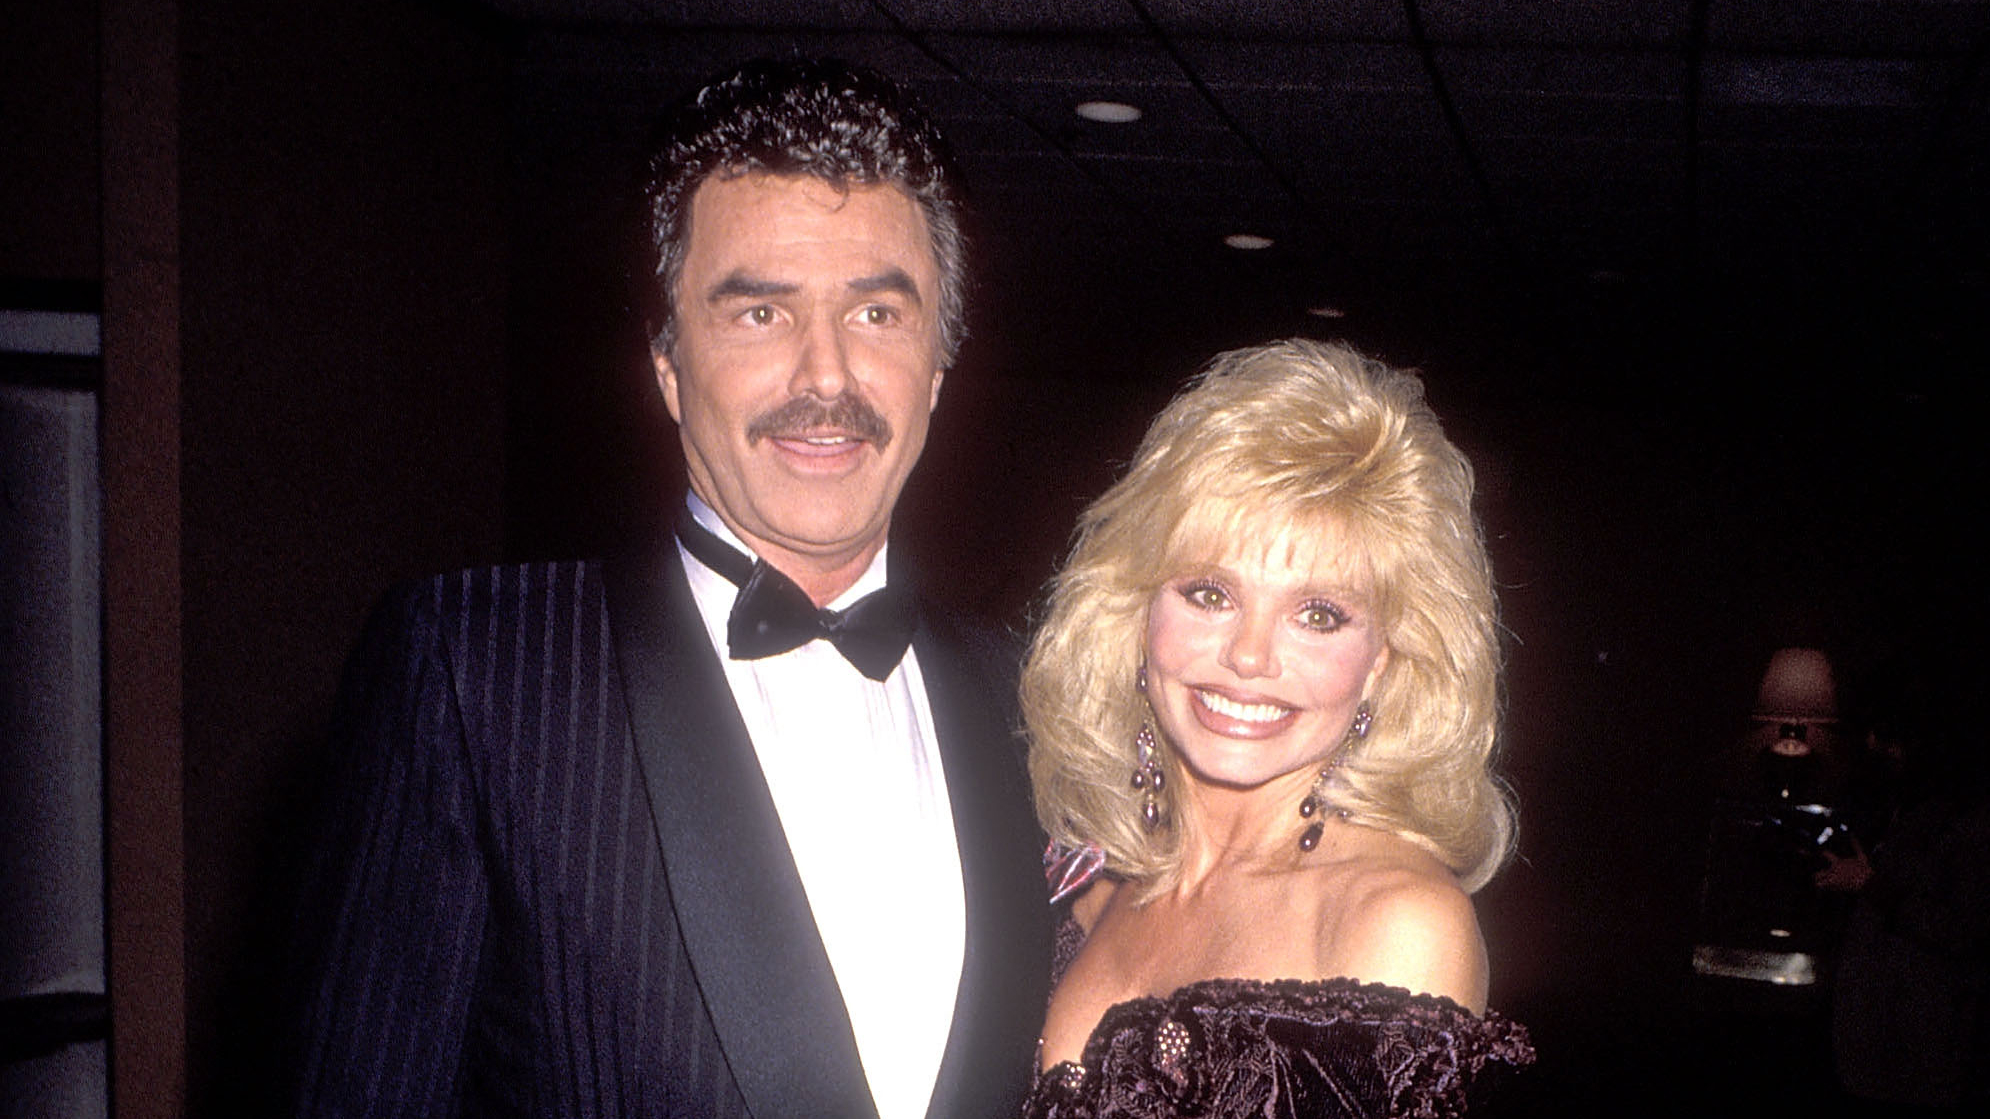 ExclusiveLoni Anderson Reveals How She Made Peace With Ex Burt Reynolds Following Their Tumultuous Marriage